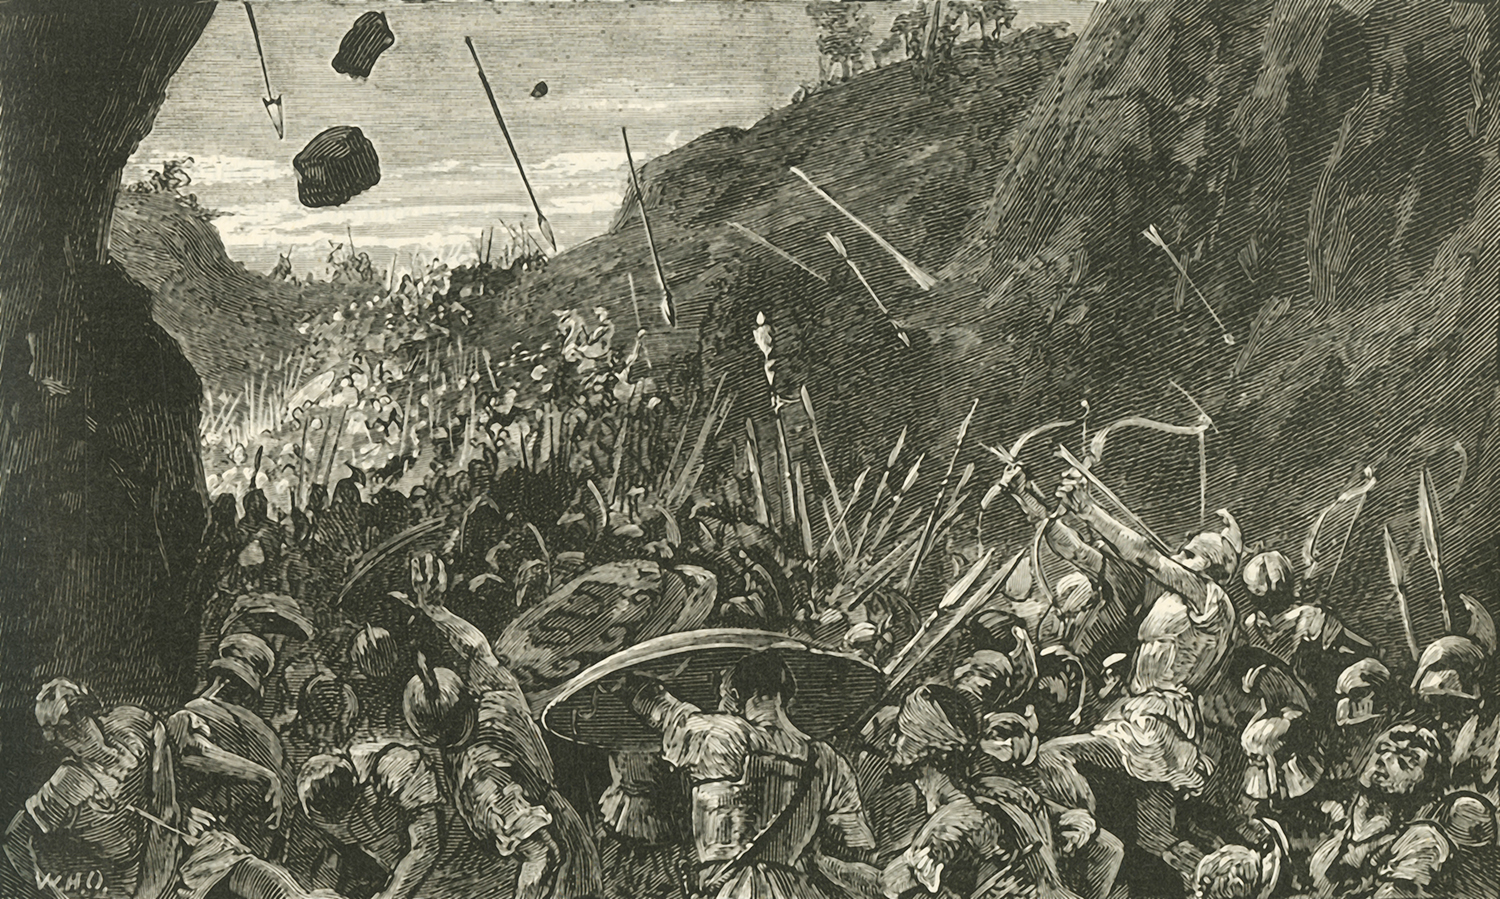 The retreat of the Athenians from Syracuse in the Peloponnesian War